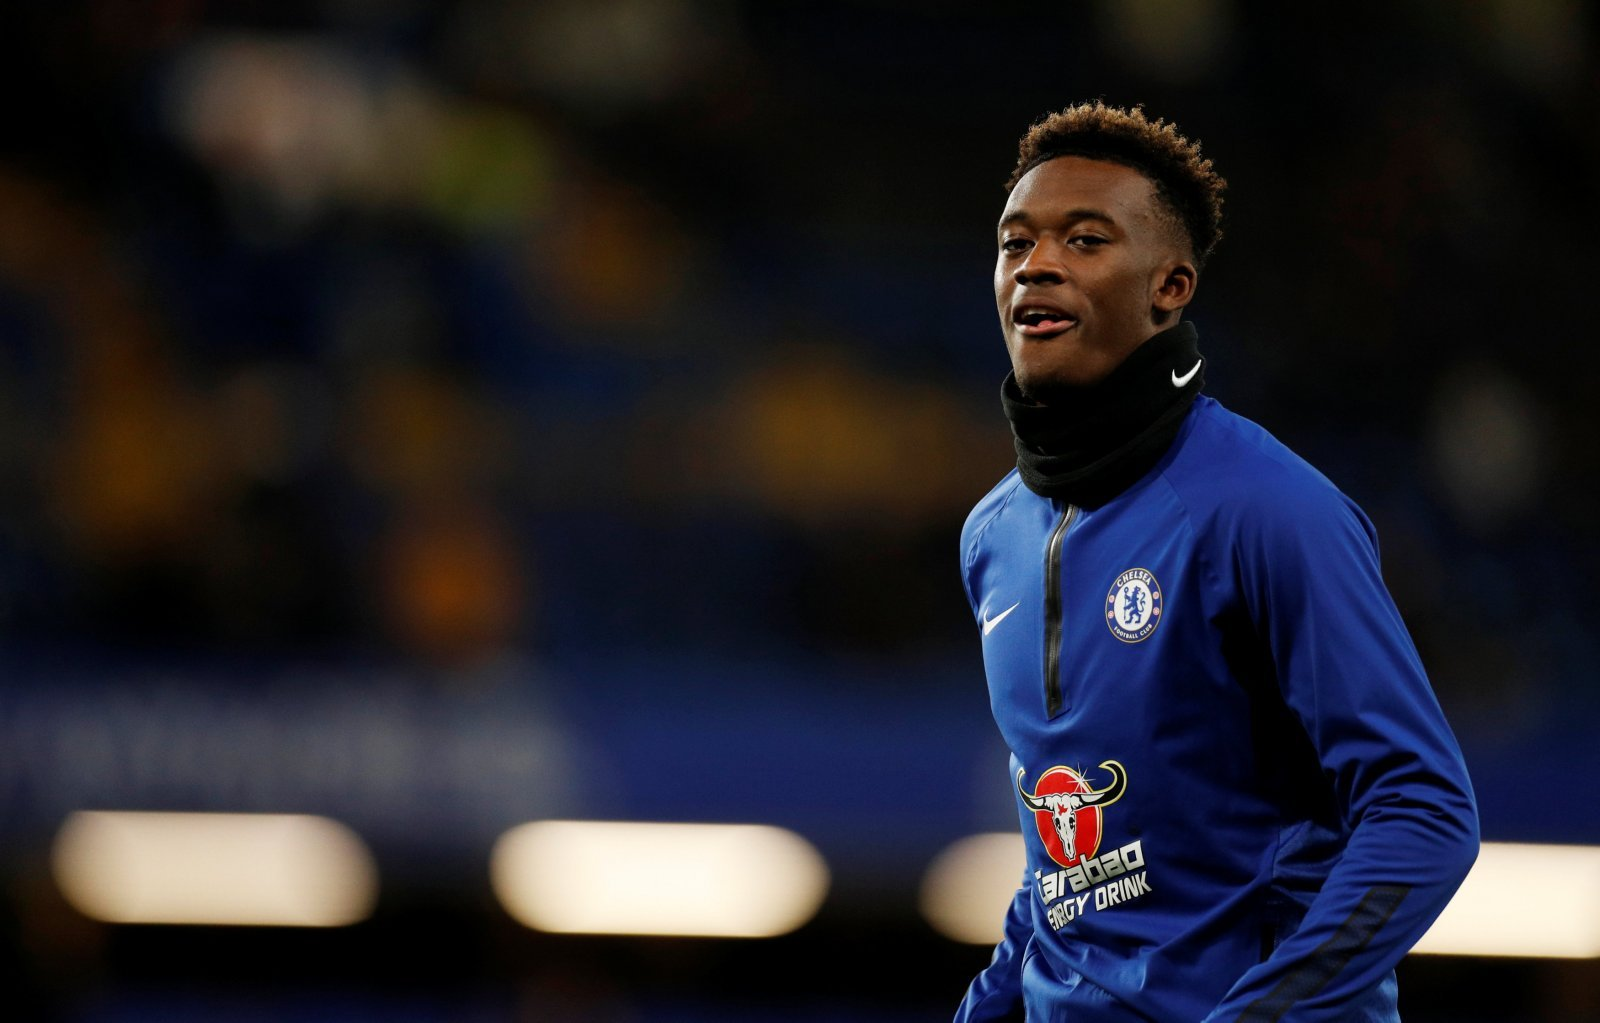 Liverpool should make signing Callum Hudson-Odoi a priority in the summer transfer window